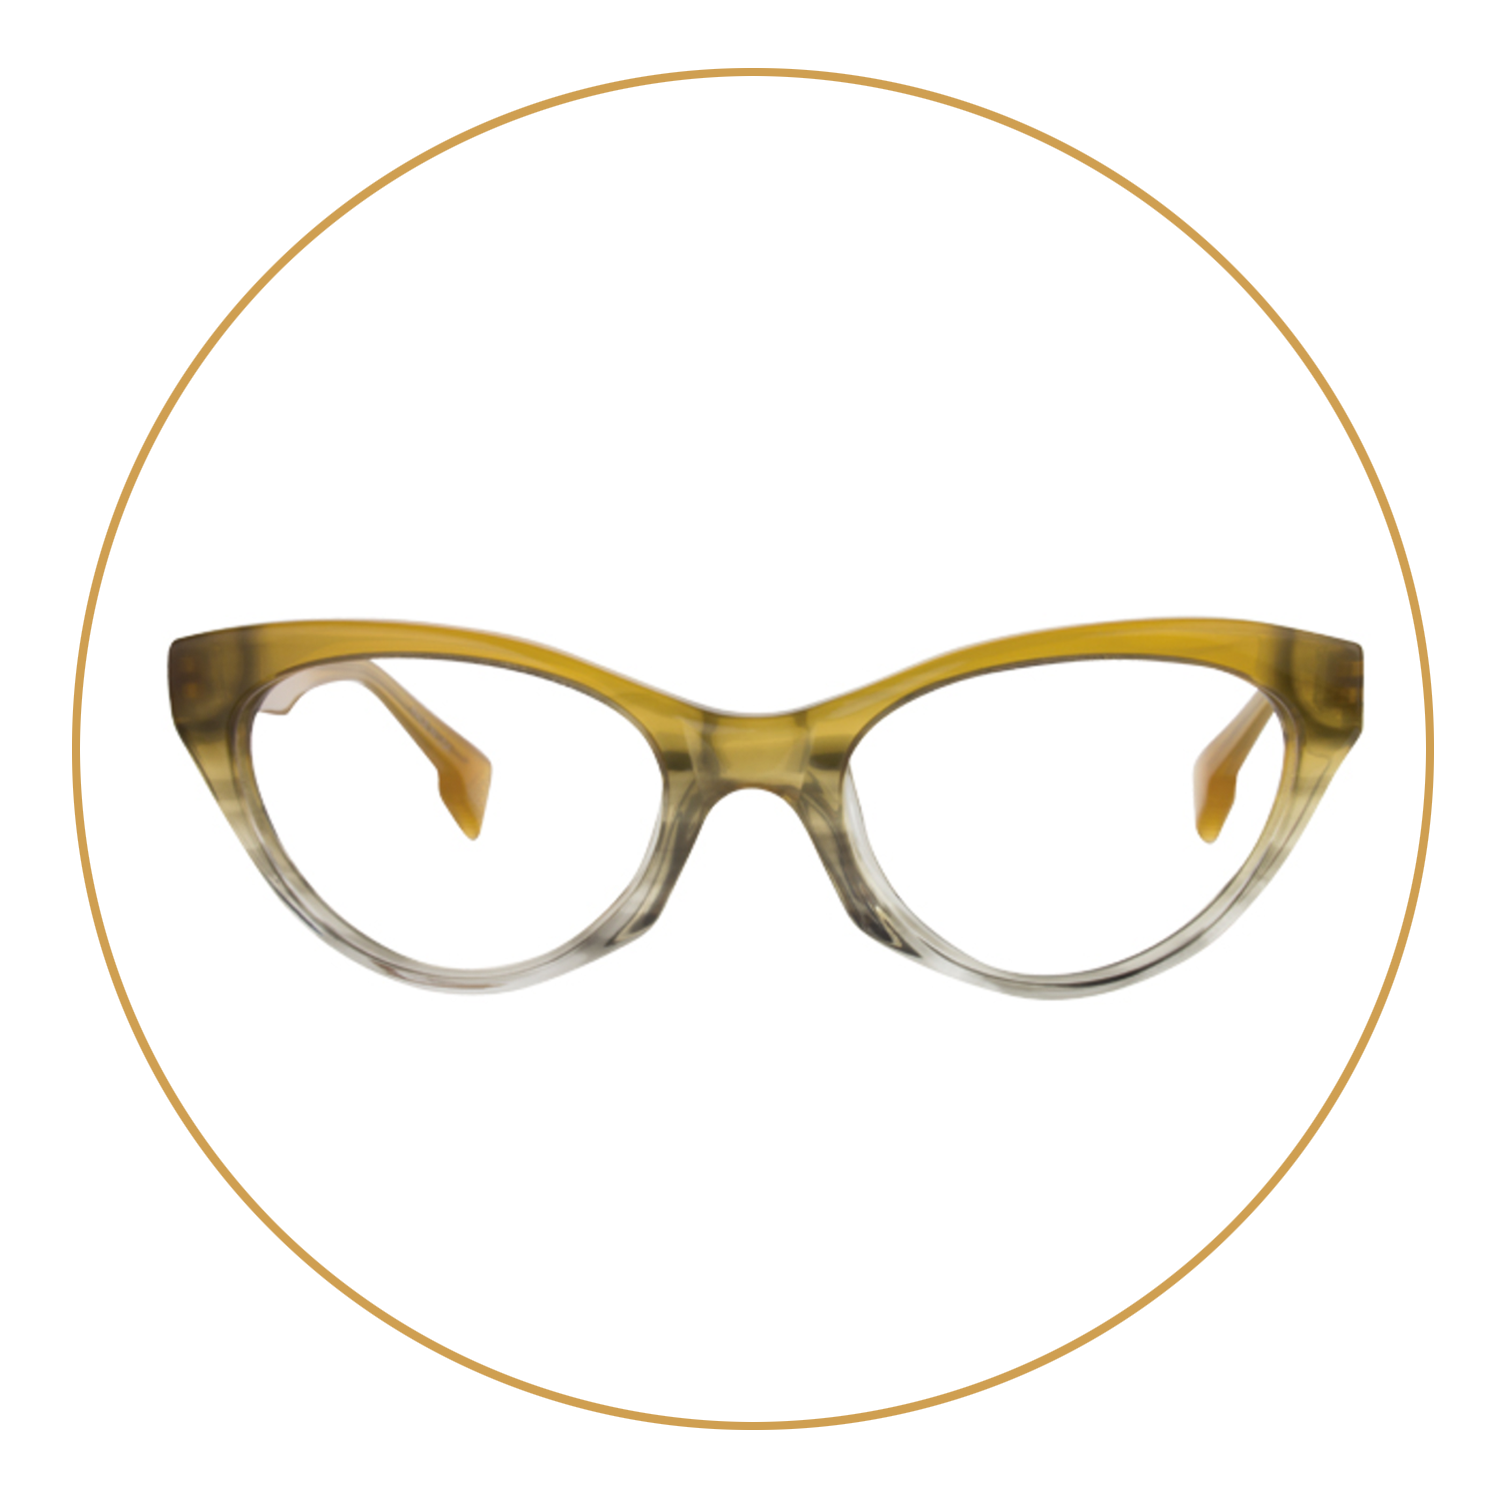 CAT-EYE - The Cat-eye is back! A great way to show off cheekbones and a sense of individuality, this retro style is great for women who aren't afraid to express themselves.